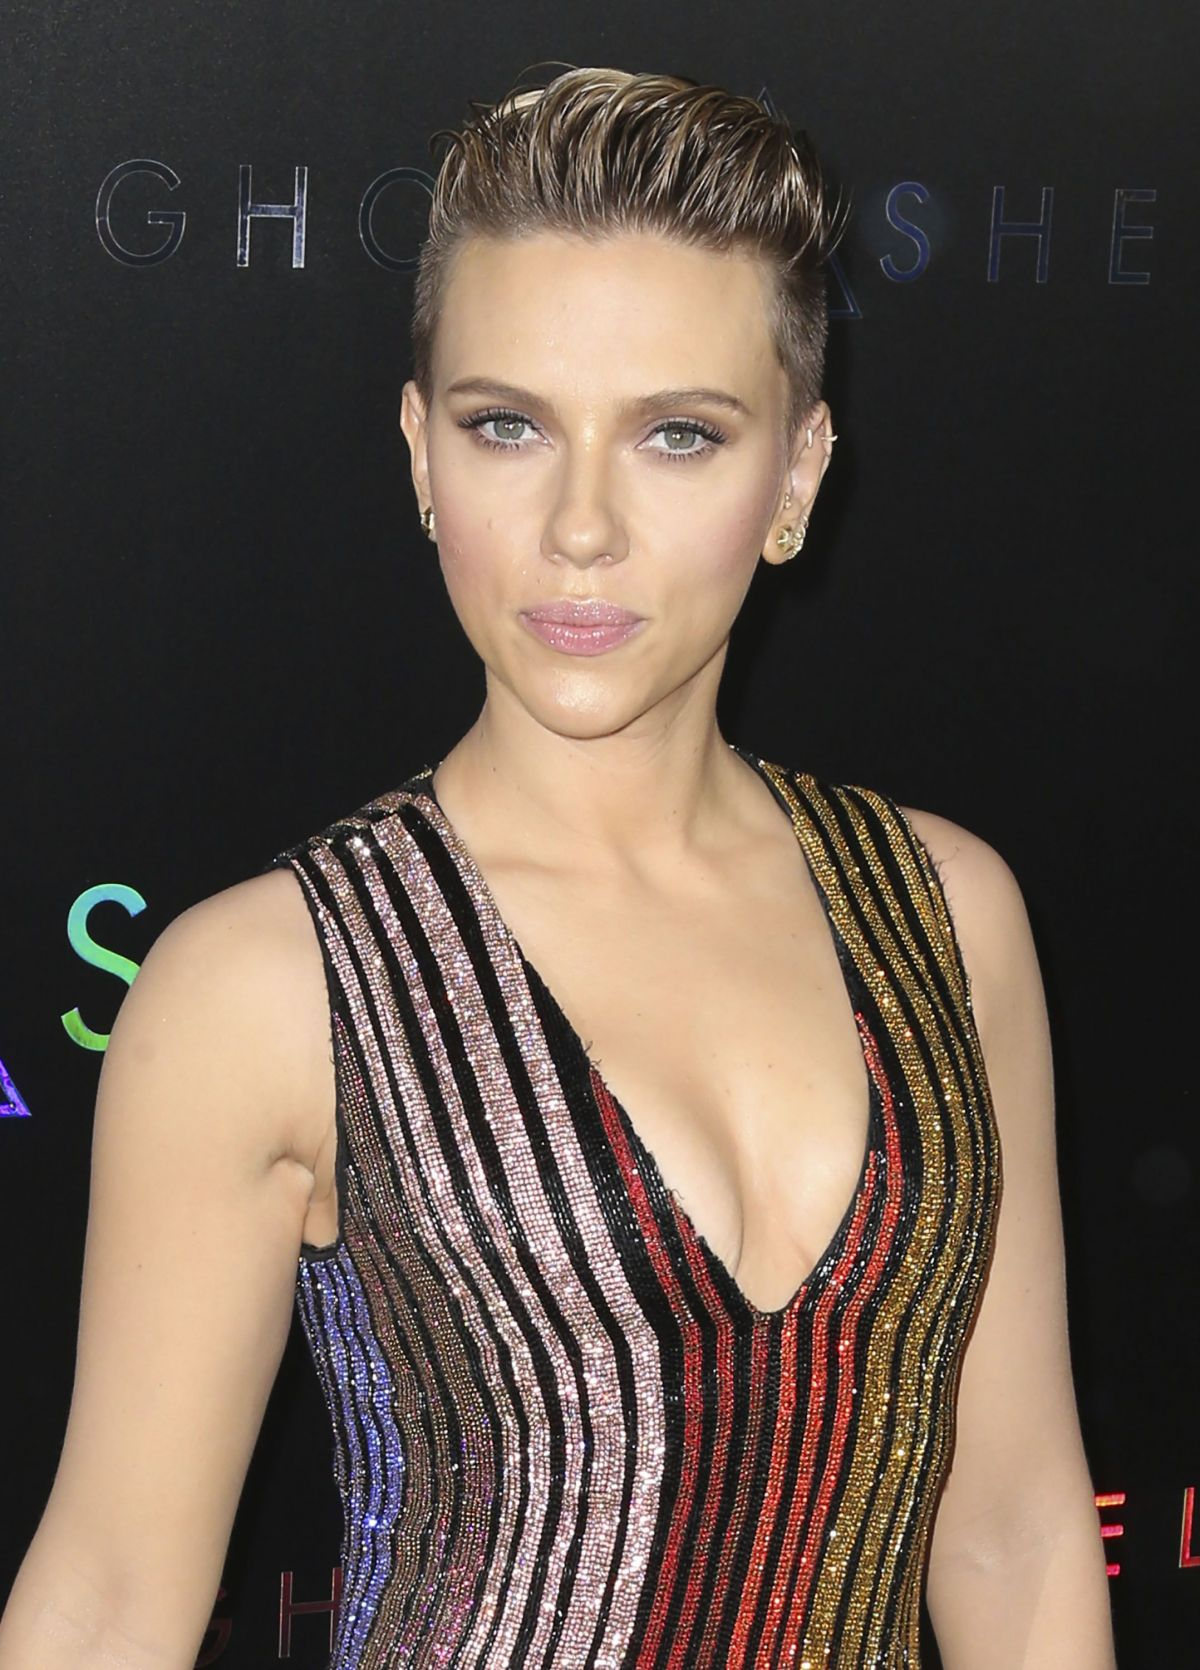 Scarlett Johansson At Ghost In The Shell Premiere In New York 03 29 2017 1 Hawtcelebs